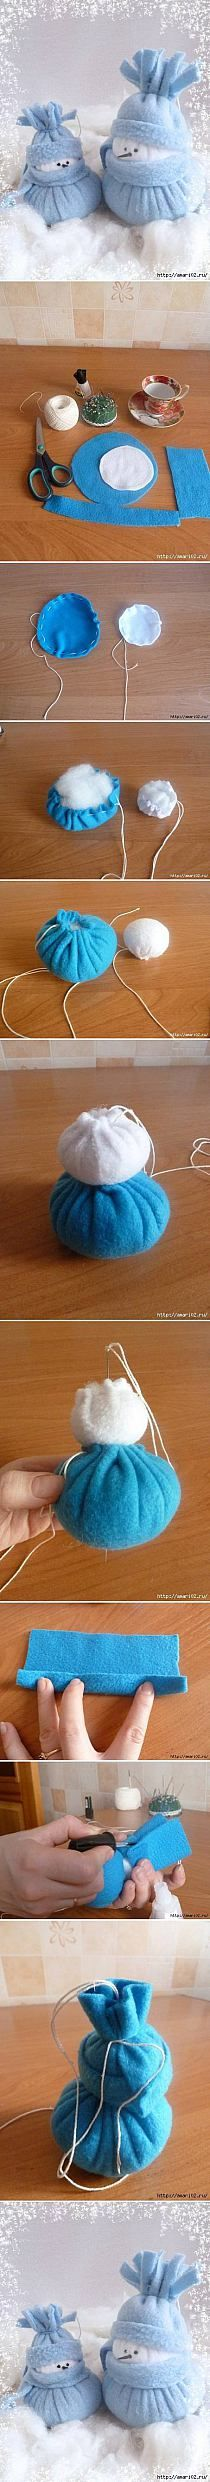 How to Make Felt Snowman Christmas holiday home decor s…